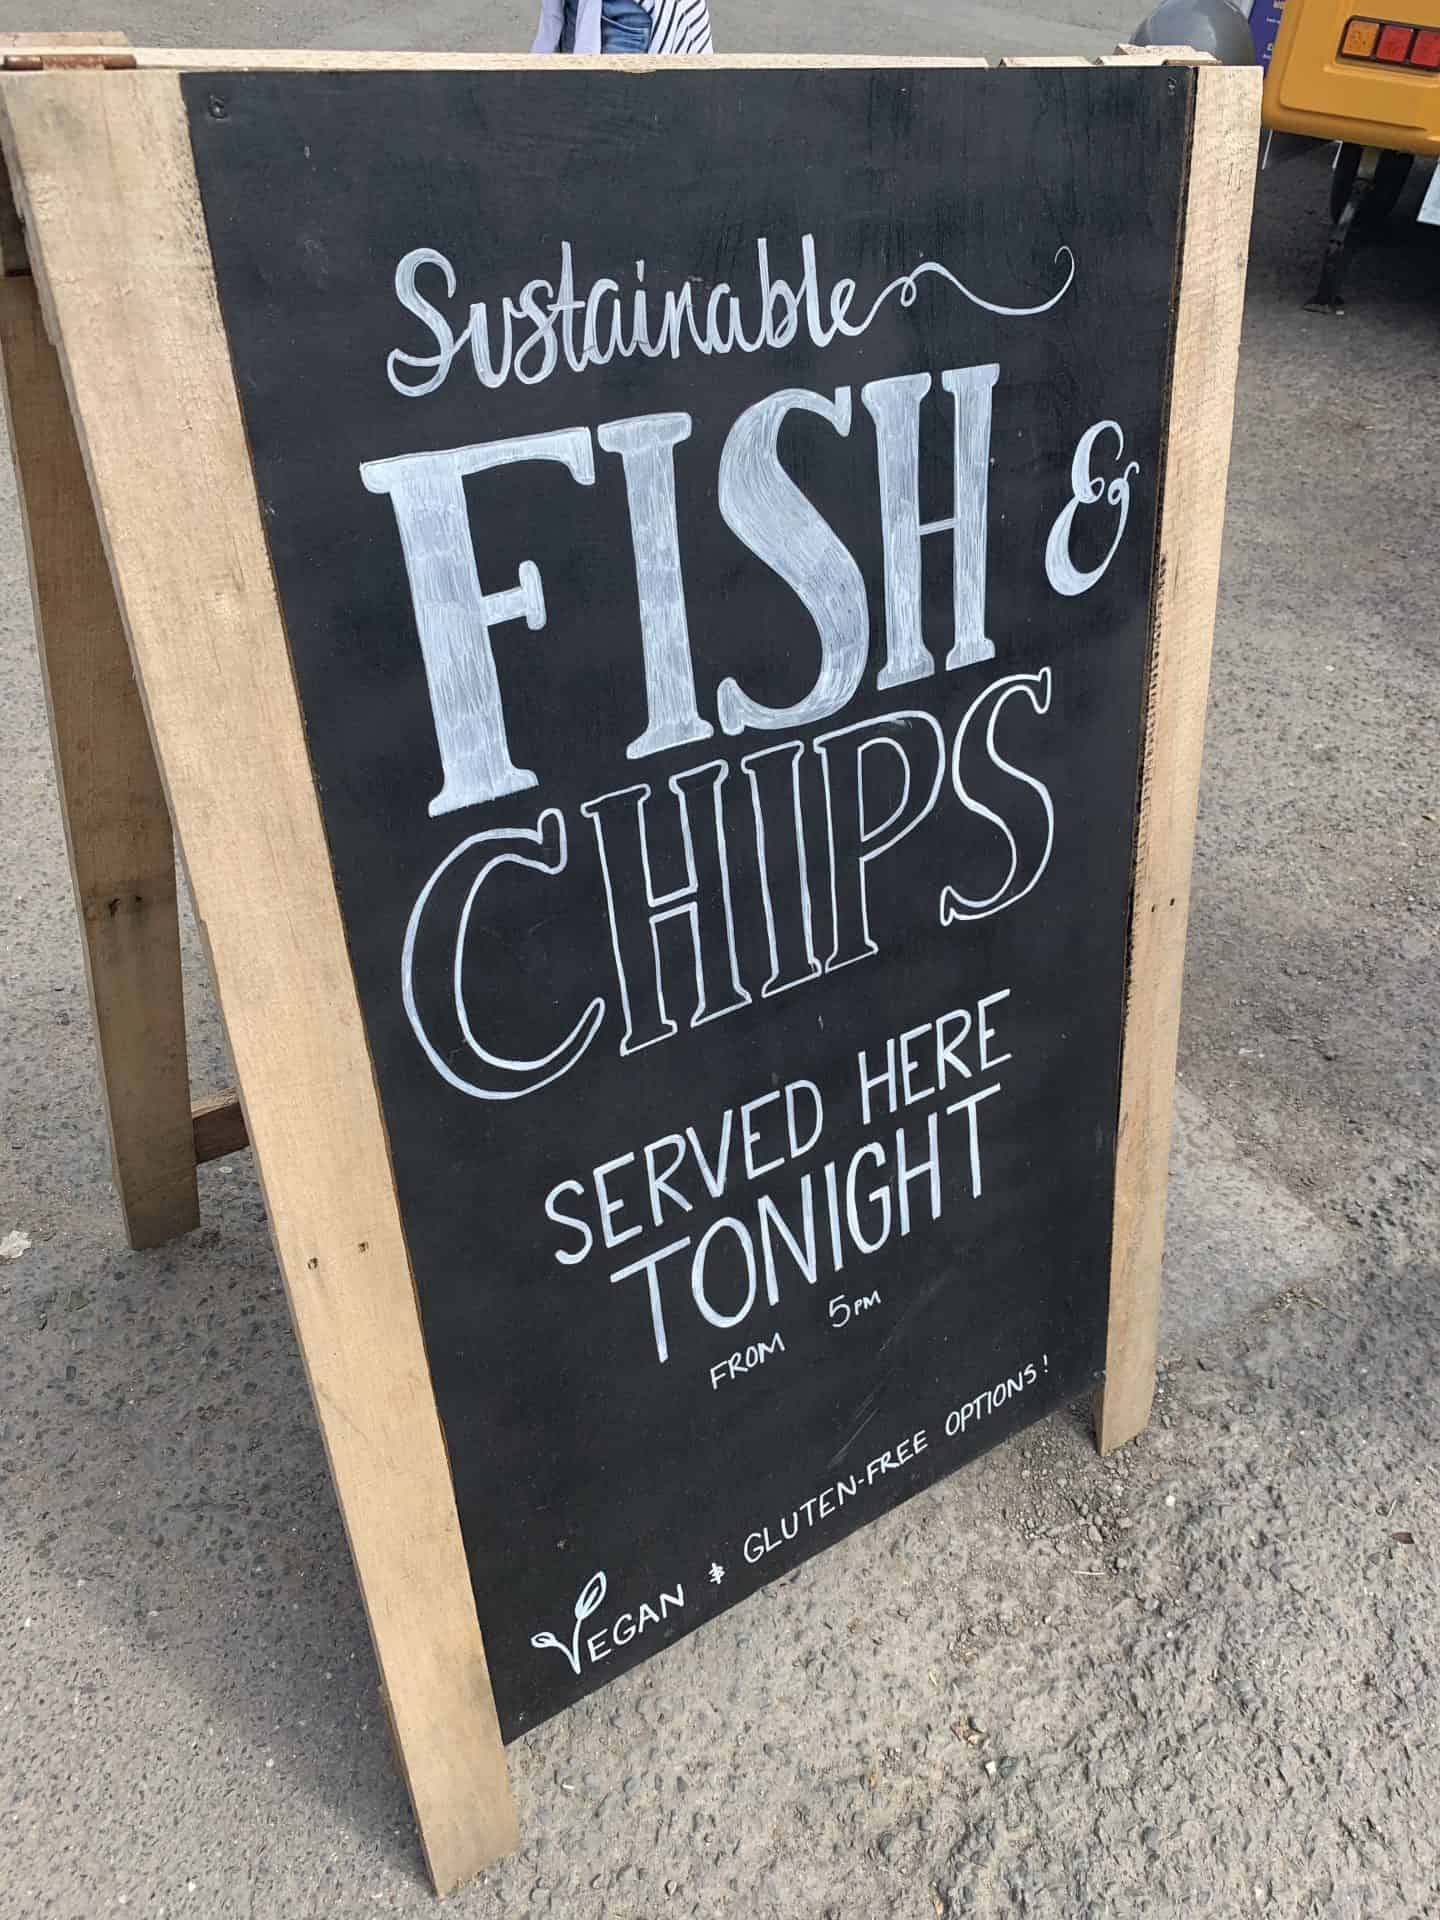 gluten free croyde sustainable fish and chips